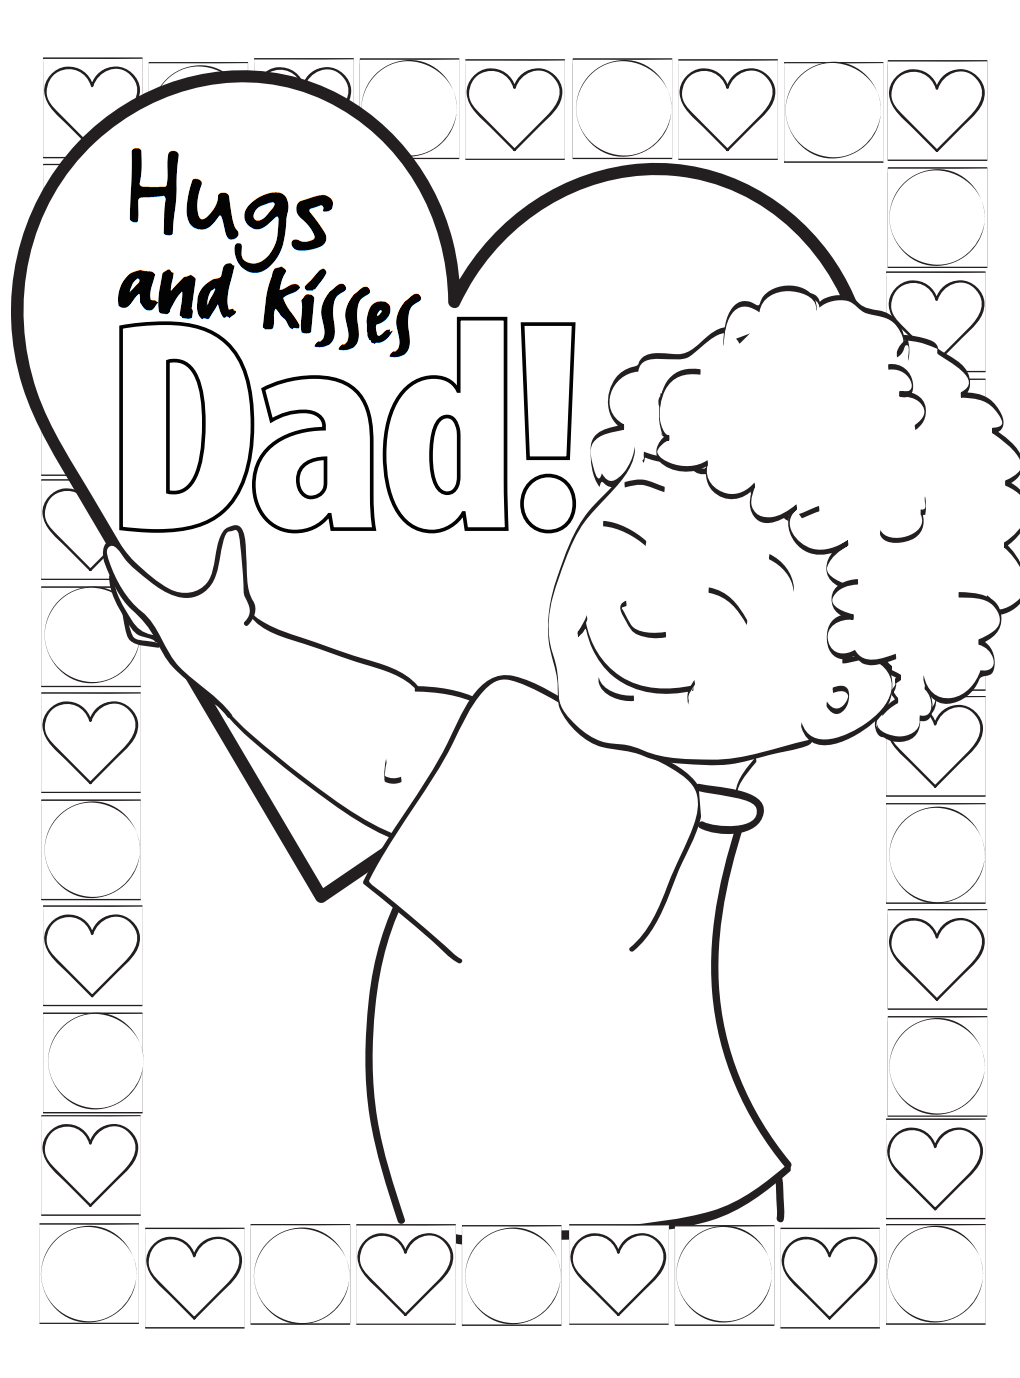 Dad Hugs and Kisses Father's Day Card